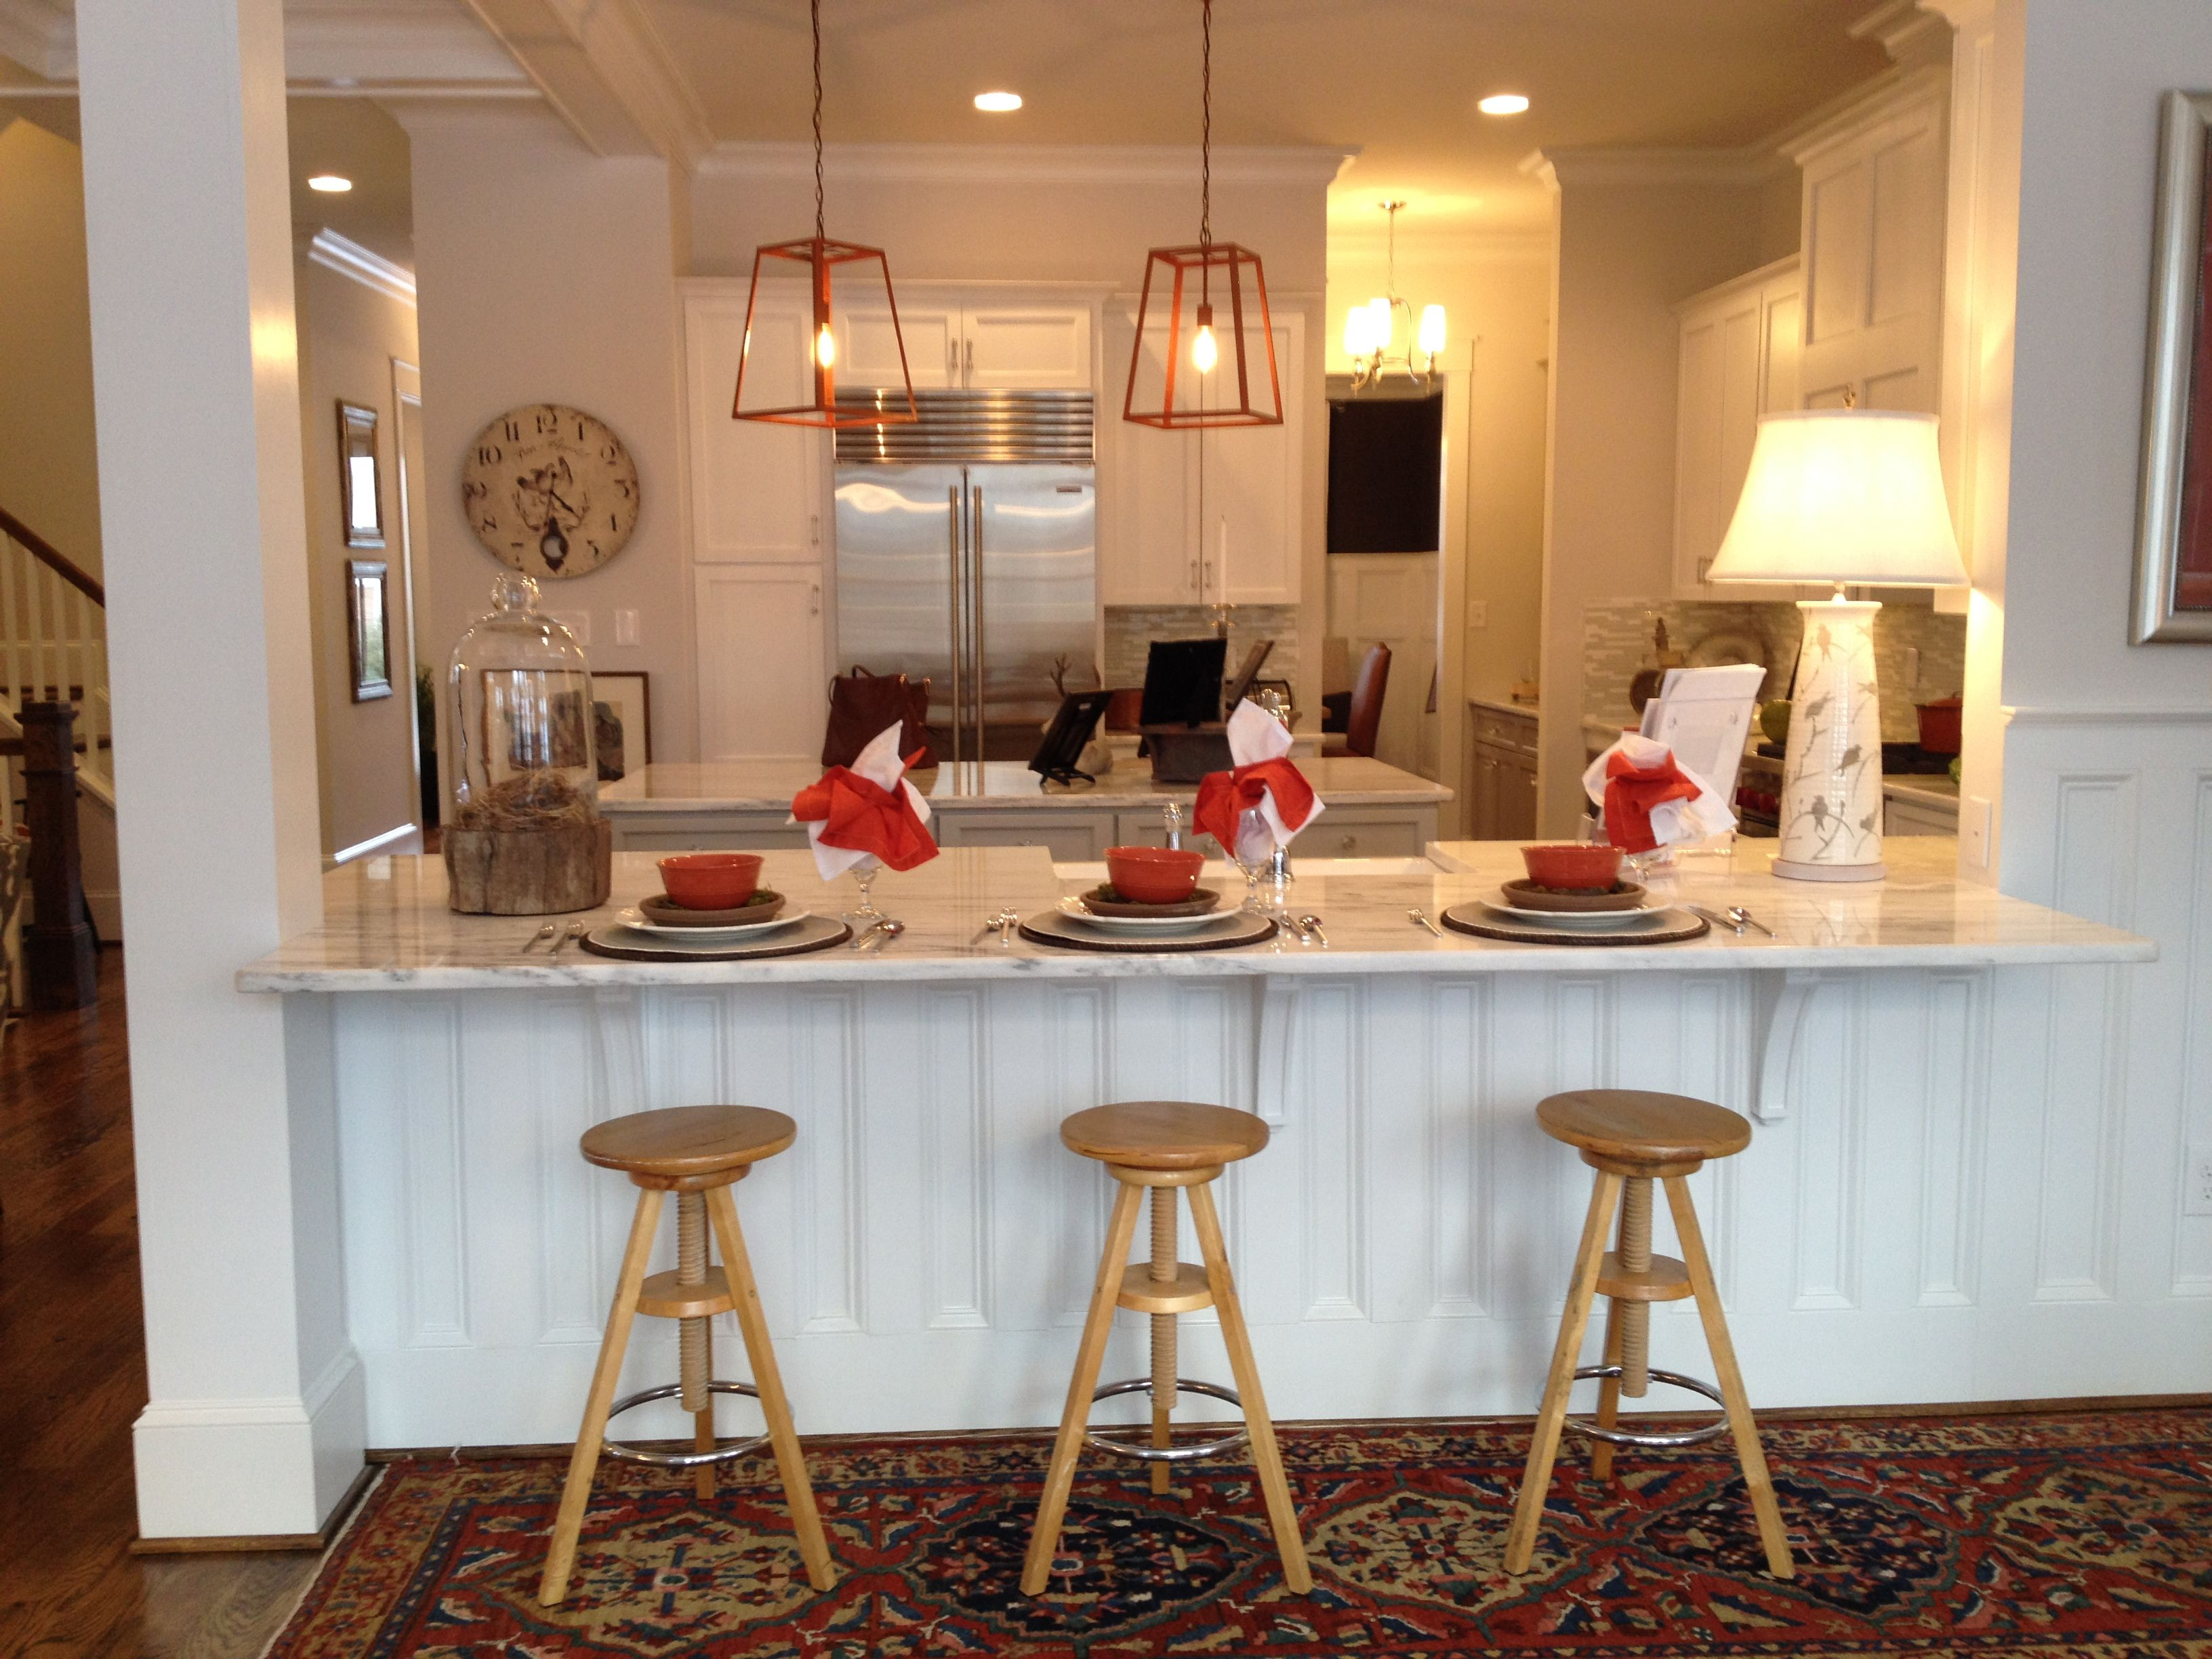 Pin By A Southern Inspired Life On Kitchen Ideas Kitchen Remodel